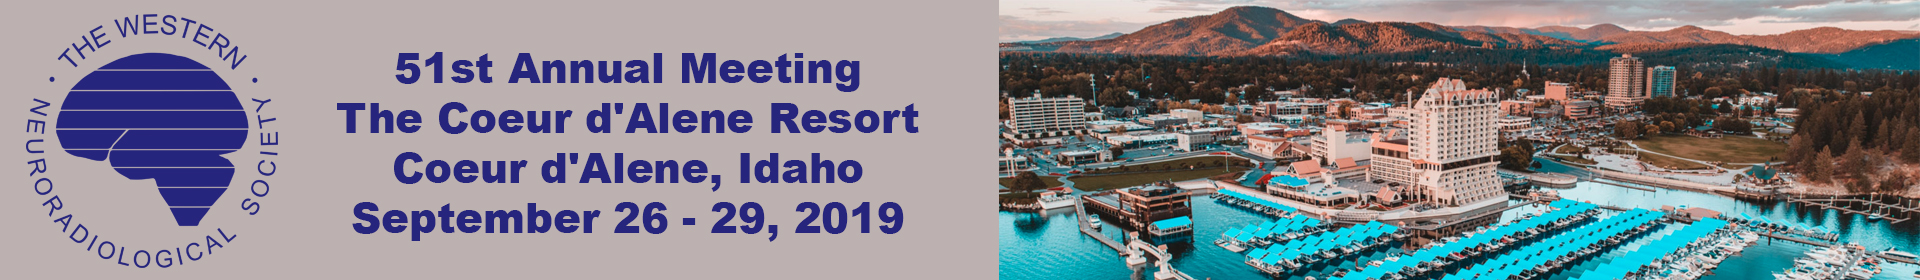 WNRS Annual Meeting in Coeur d'Alene Idaho on September 26-29, 2019